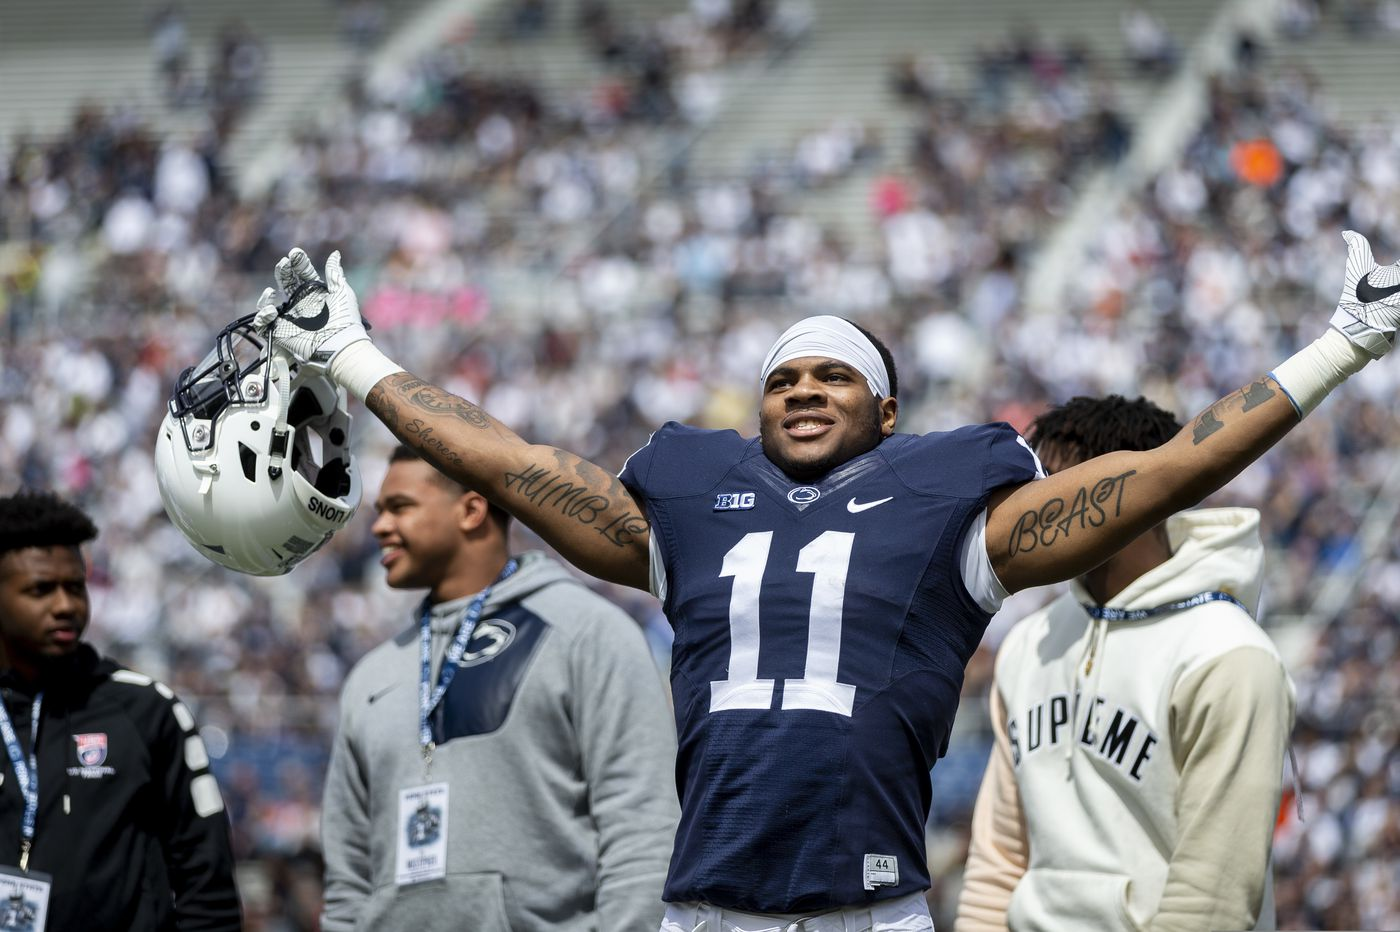 Penn State's Micah Parsons gathers numerous postseason honors but says it won't change him